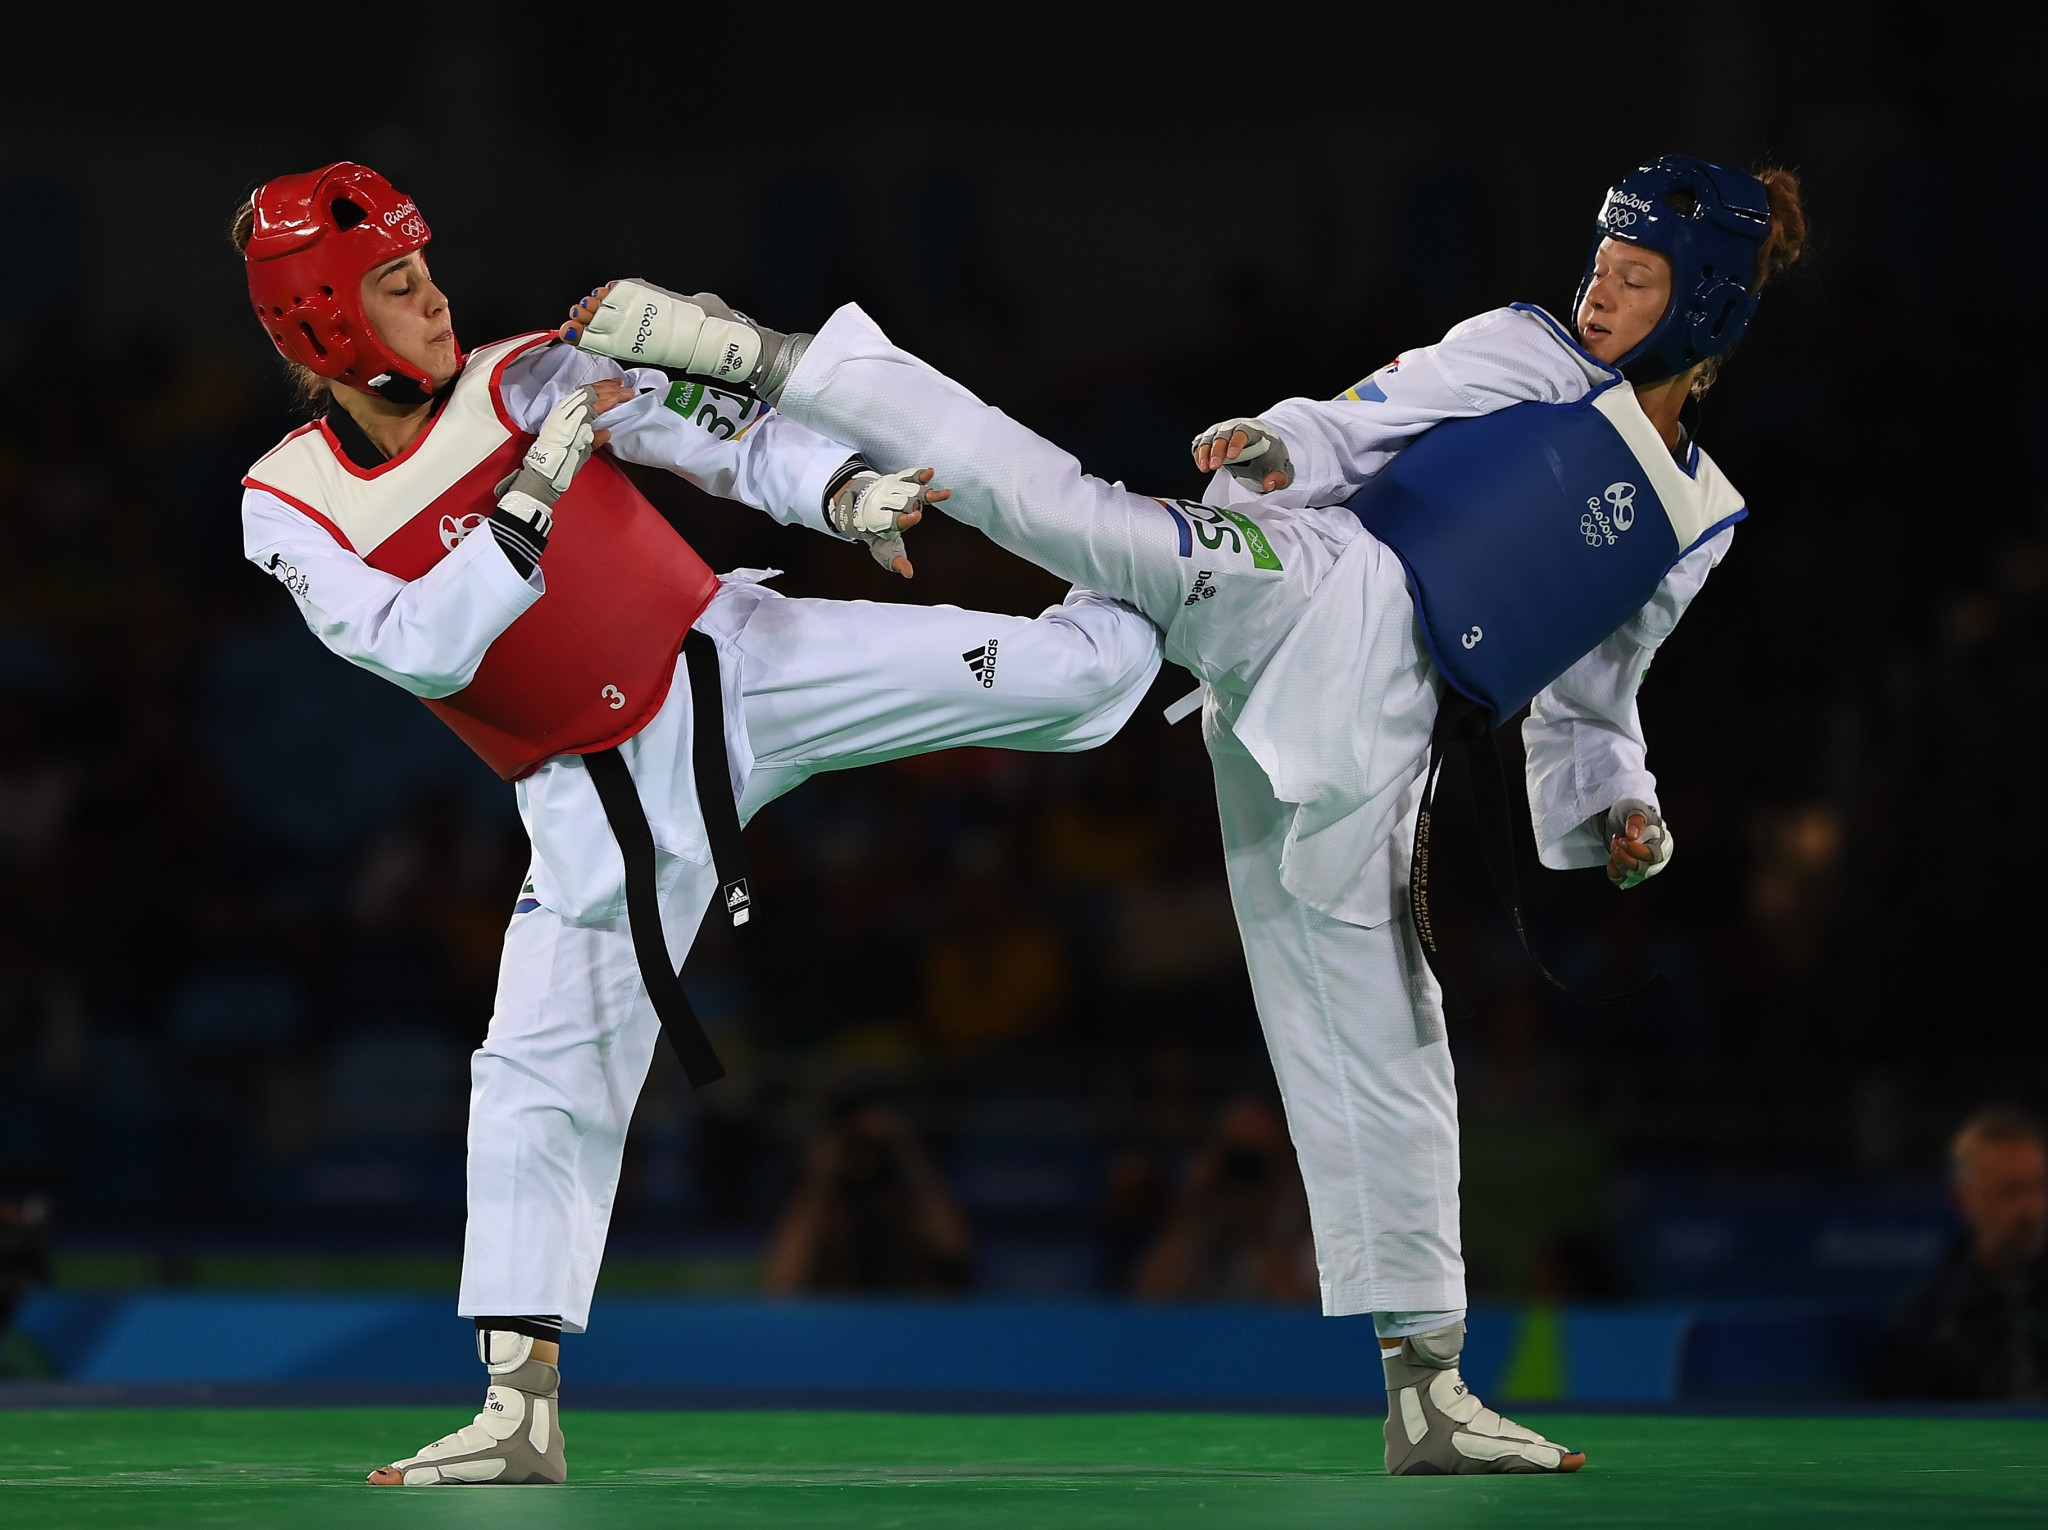 Caroline Marton was one of four athletes that represented Australia in taekwondo at the Rio 2016 Olympic Games ©Getty Images